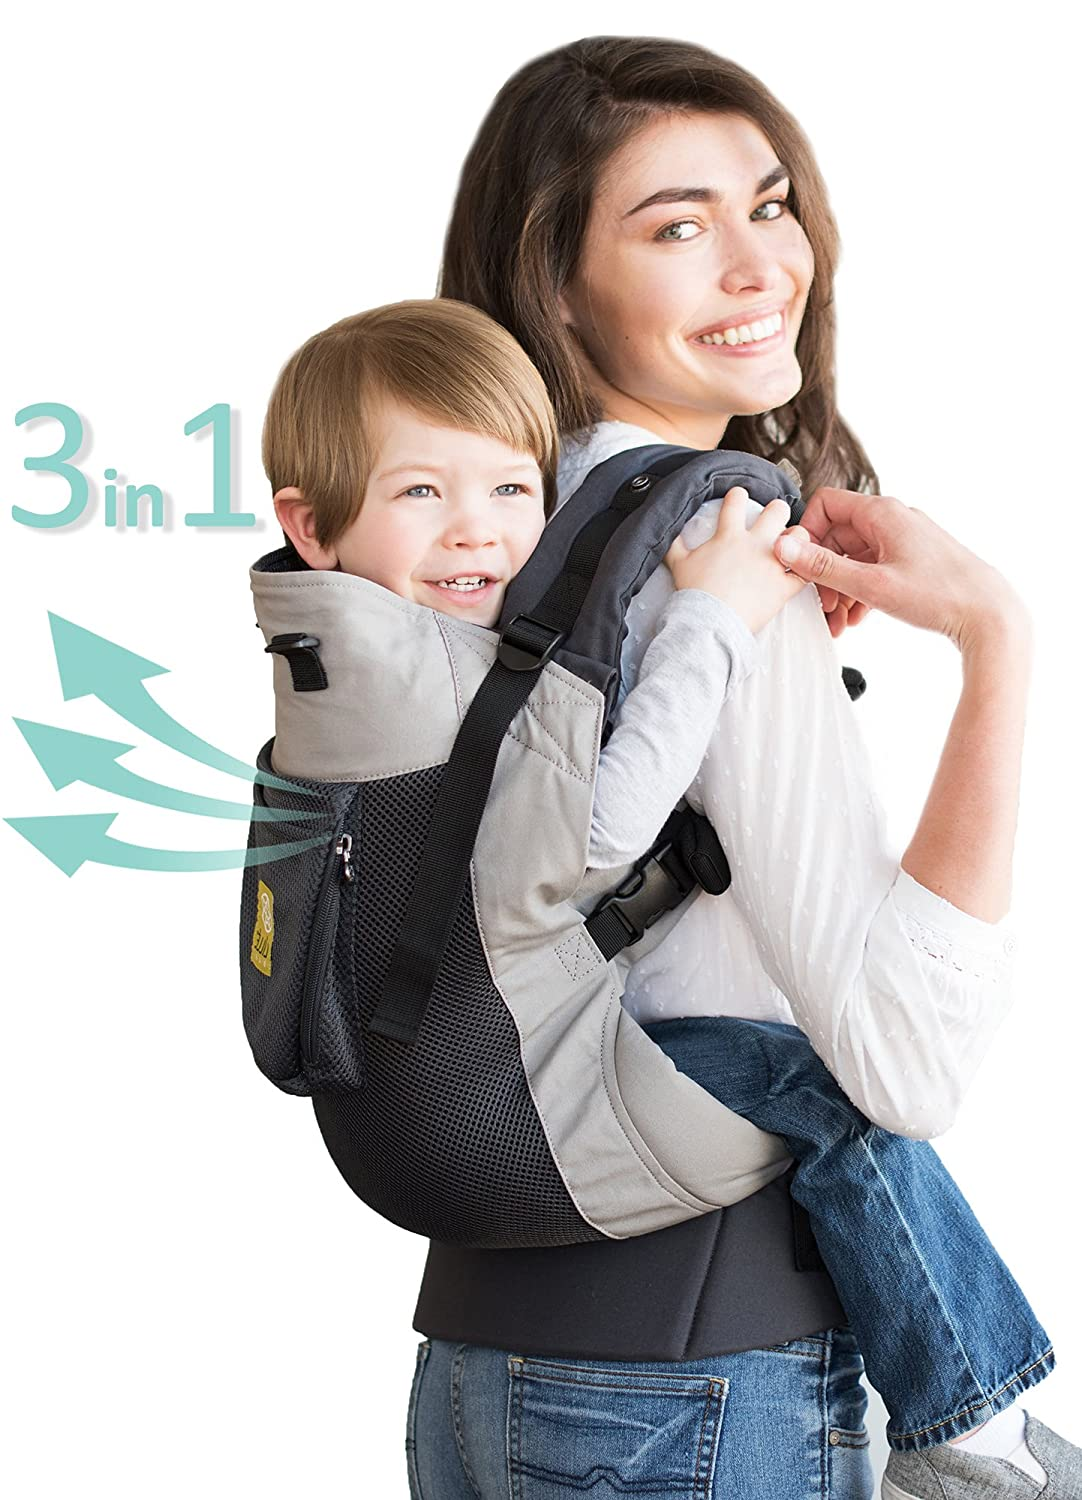 LÍ LLÉ baby 3 in 1 CarryOn Toddler Carrier - Airflow, Charcoal Silver LILLEbaby CO-4A-404-N